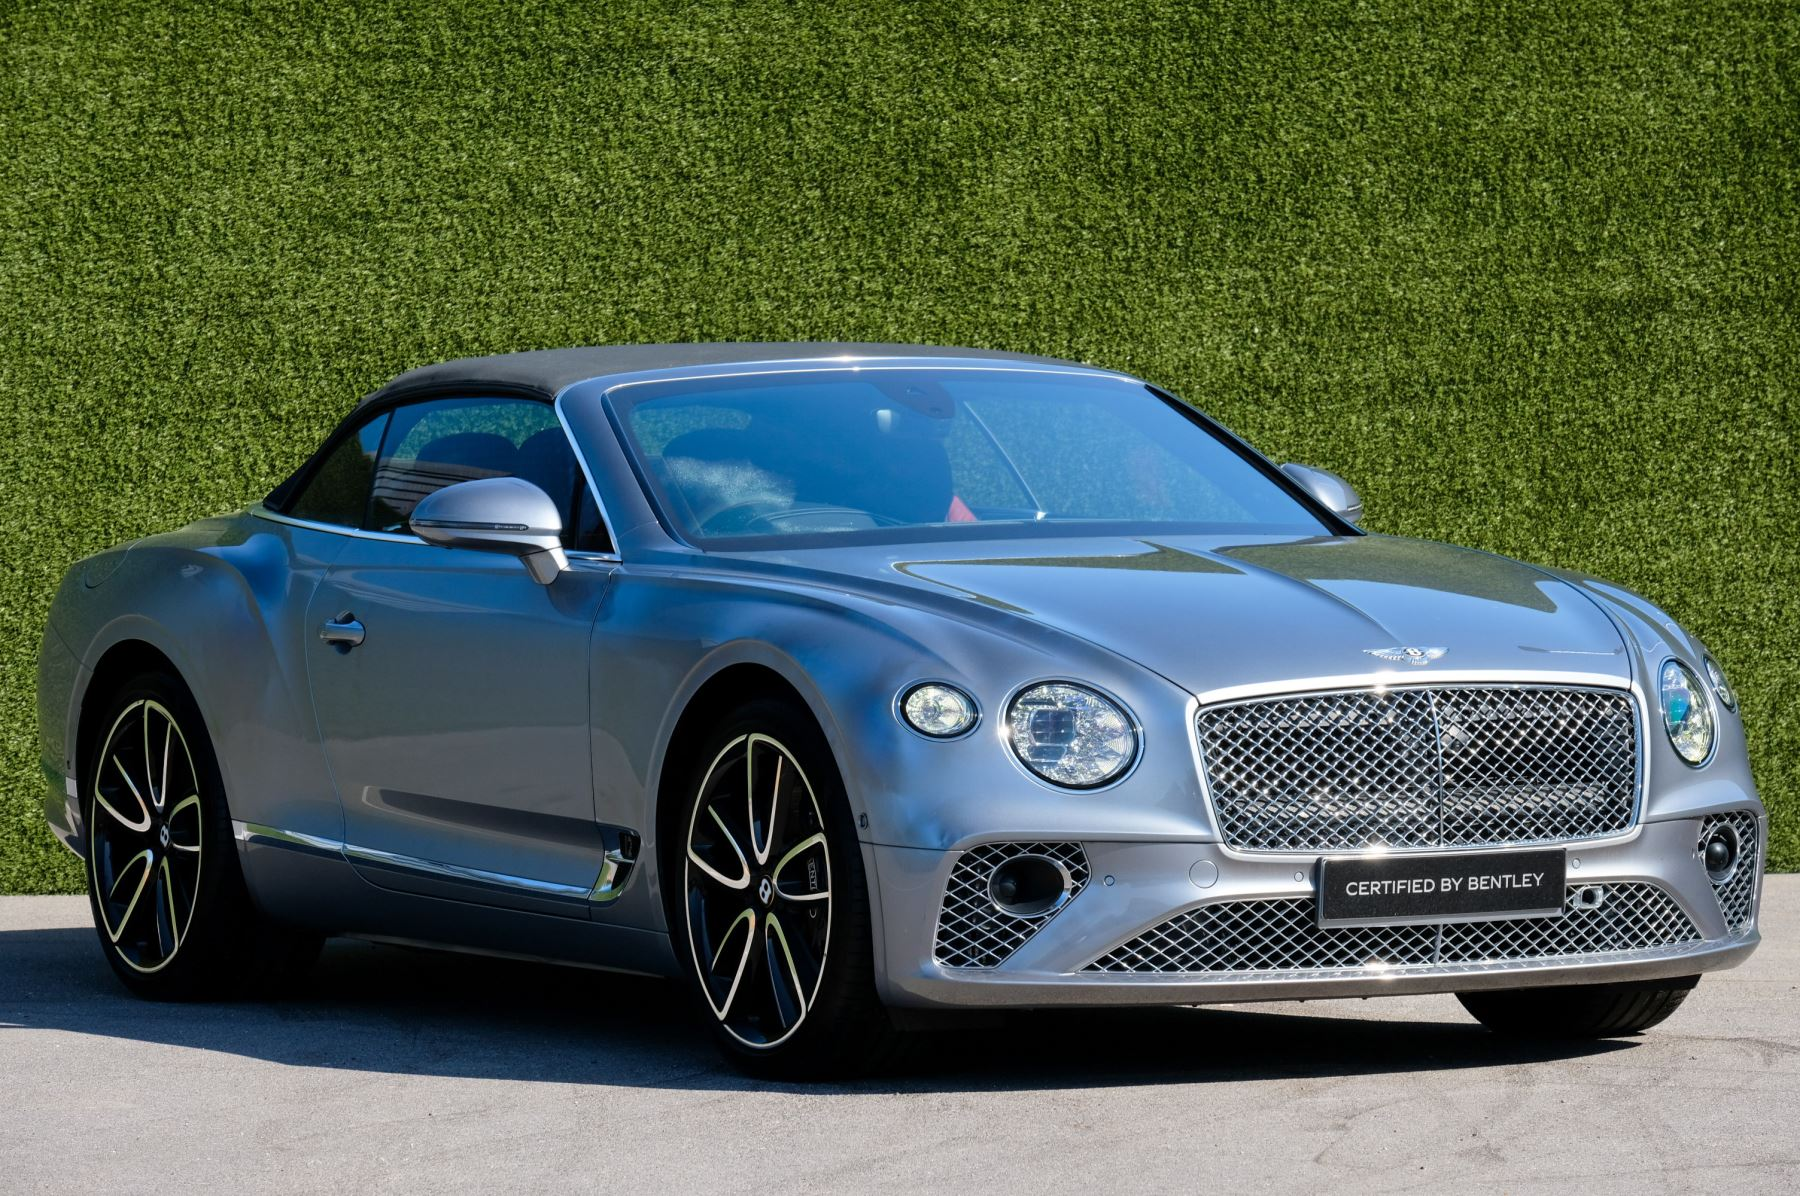 Bentley Continental GTC 6.0 W12 2dr Automatic Convertible